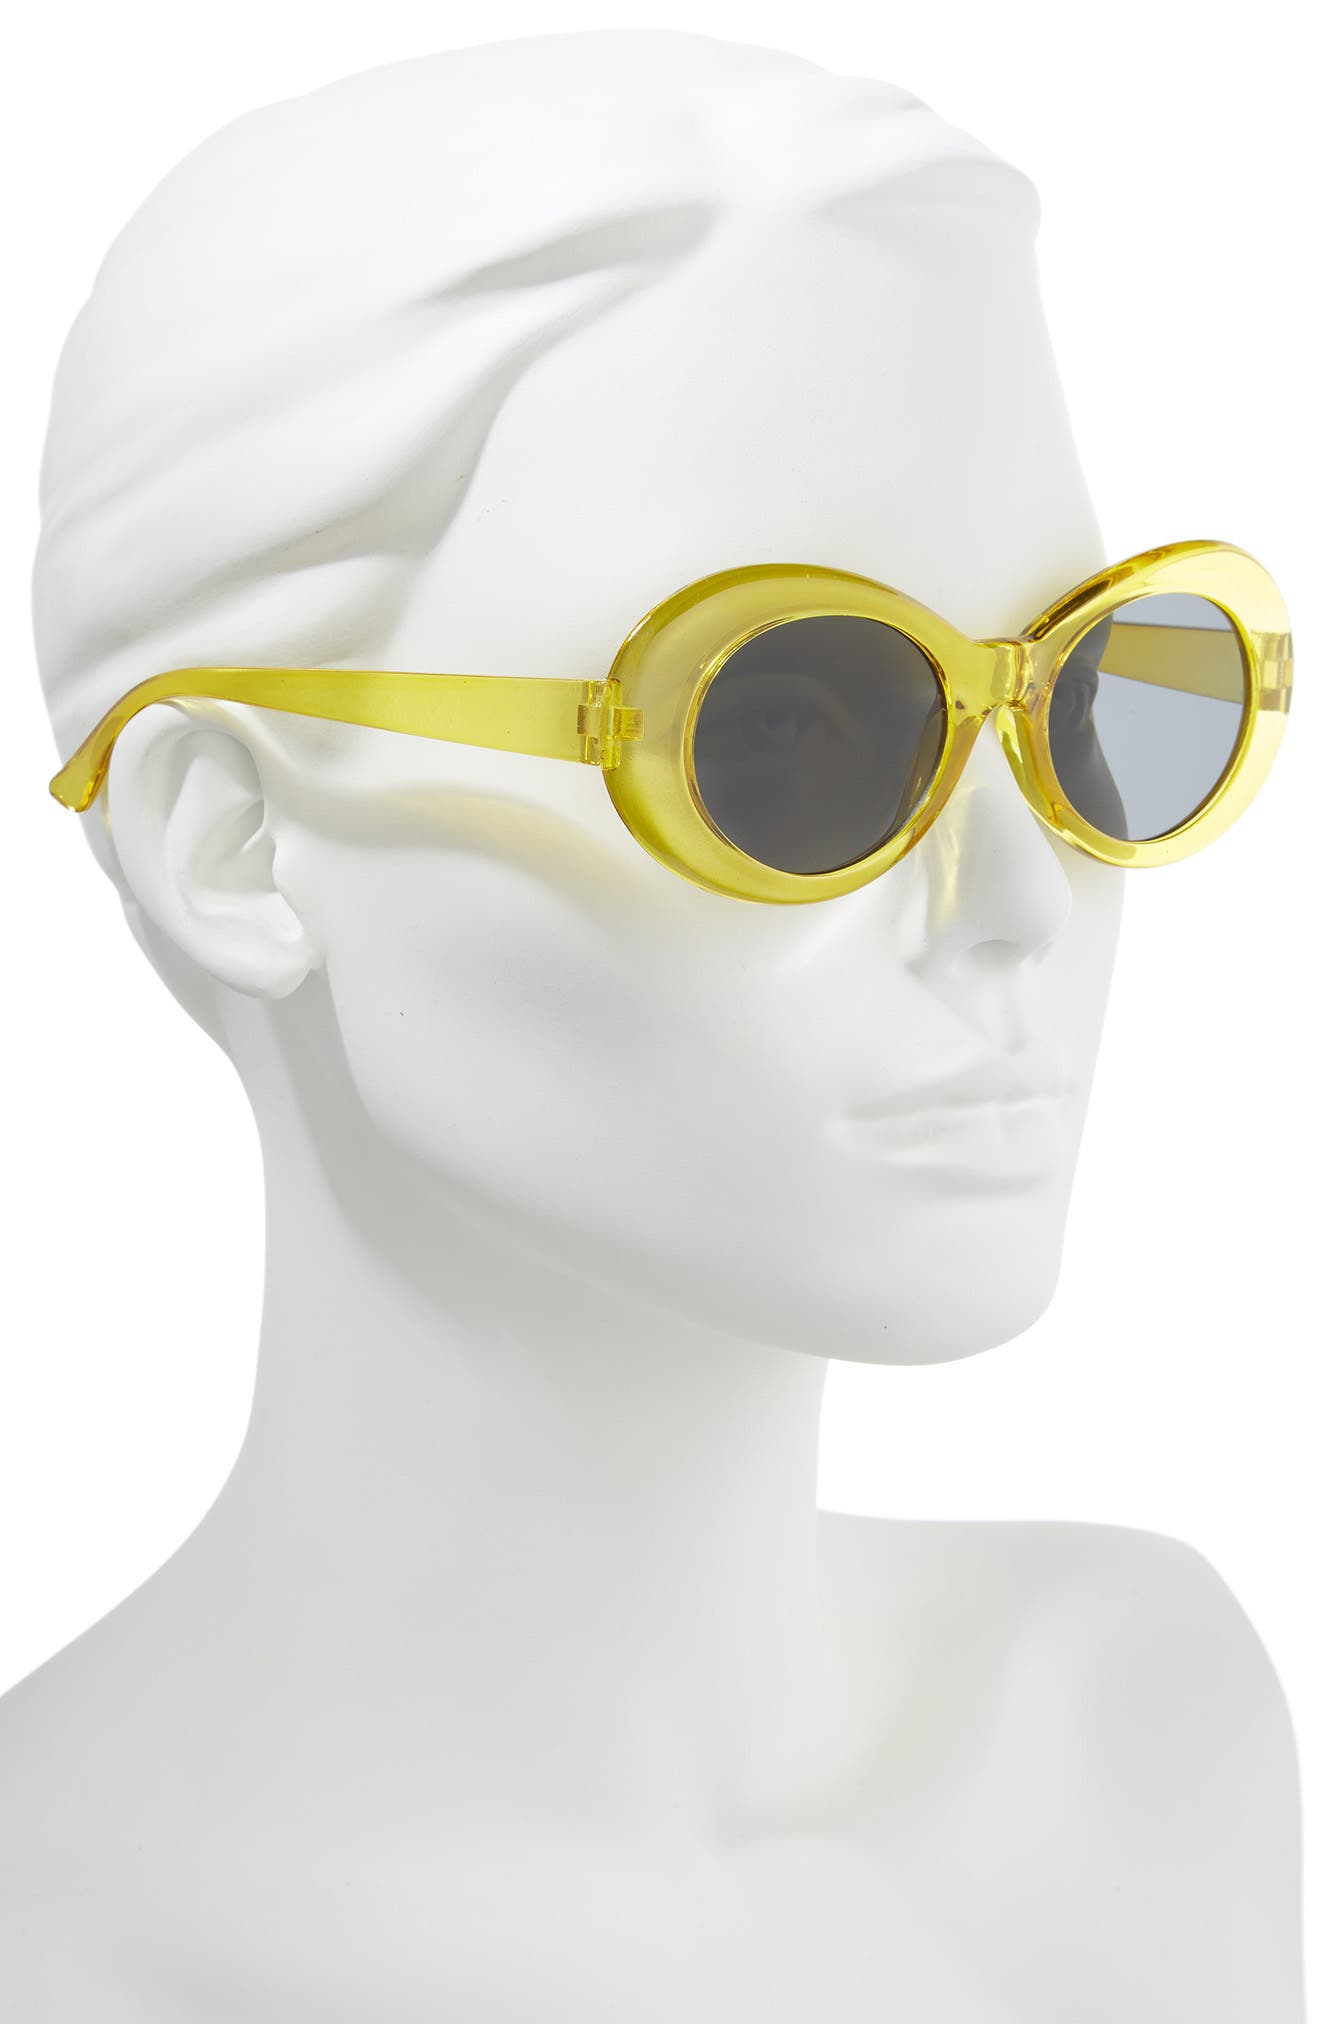 50mm Round Sunglasses,                             Alternate thumbnail 2, color,                             Clear Yellow